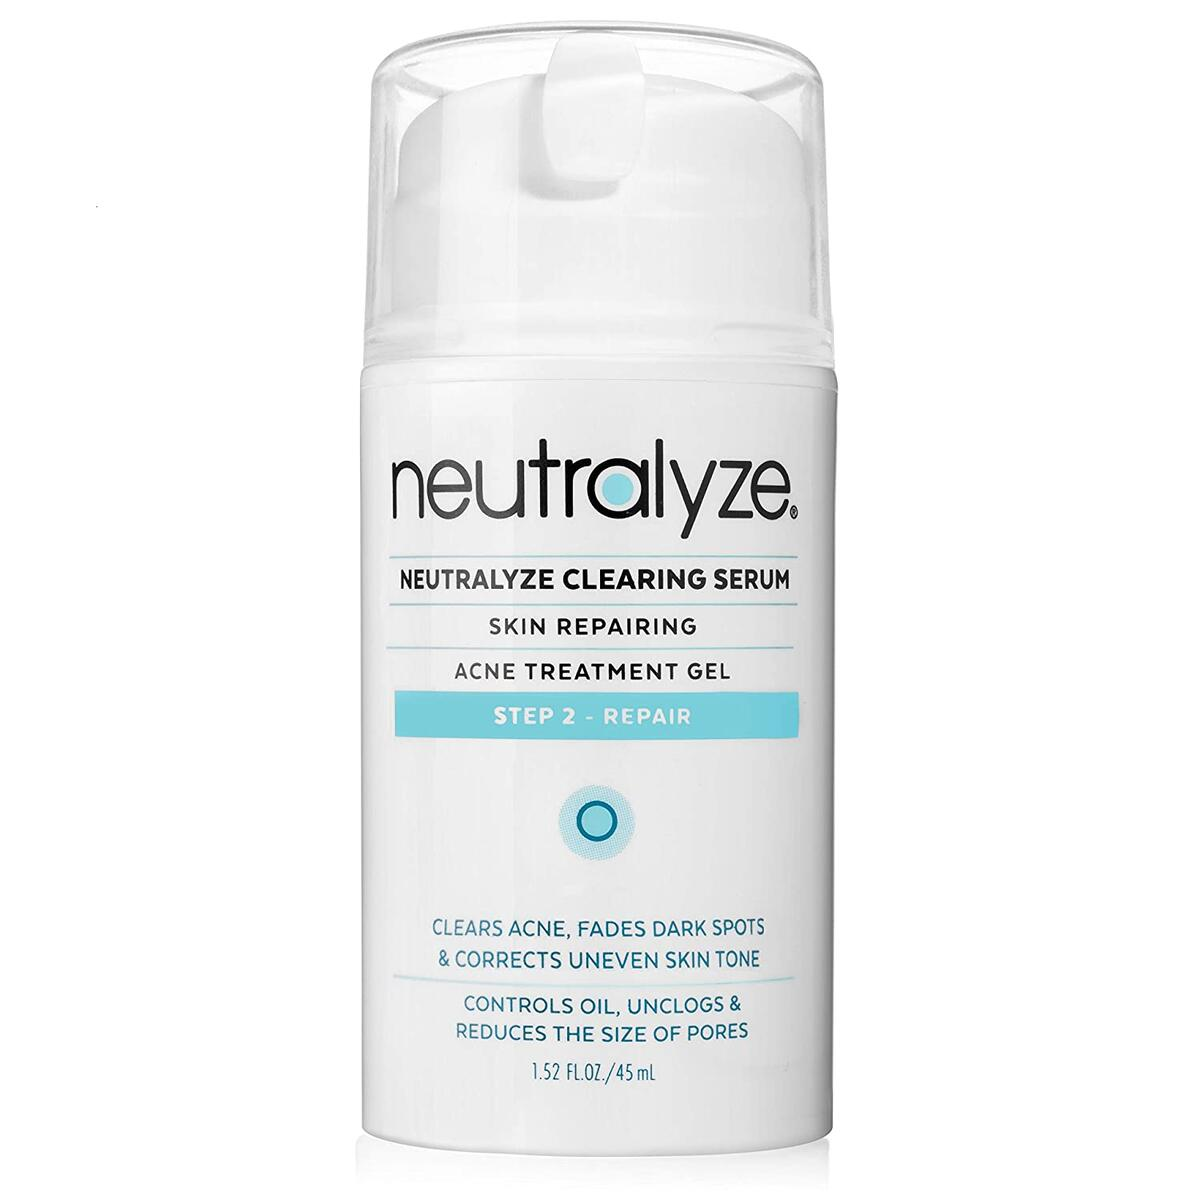 Neutralyze Moderate To Severe Acne Clearing Serum - Maximum Strength Cystic Acne Treatment + Acne Spot Treatment With 2% Salicylic Acid + 1% Mandelic Acid + Nitrogen Boost Skincare Technology